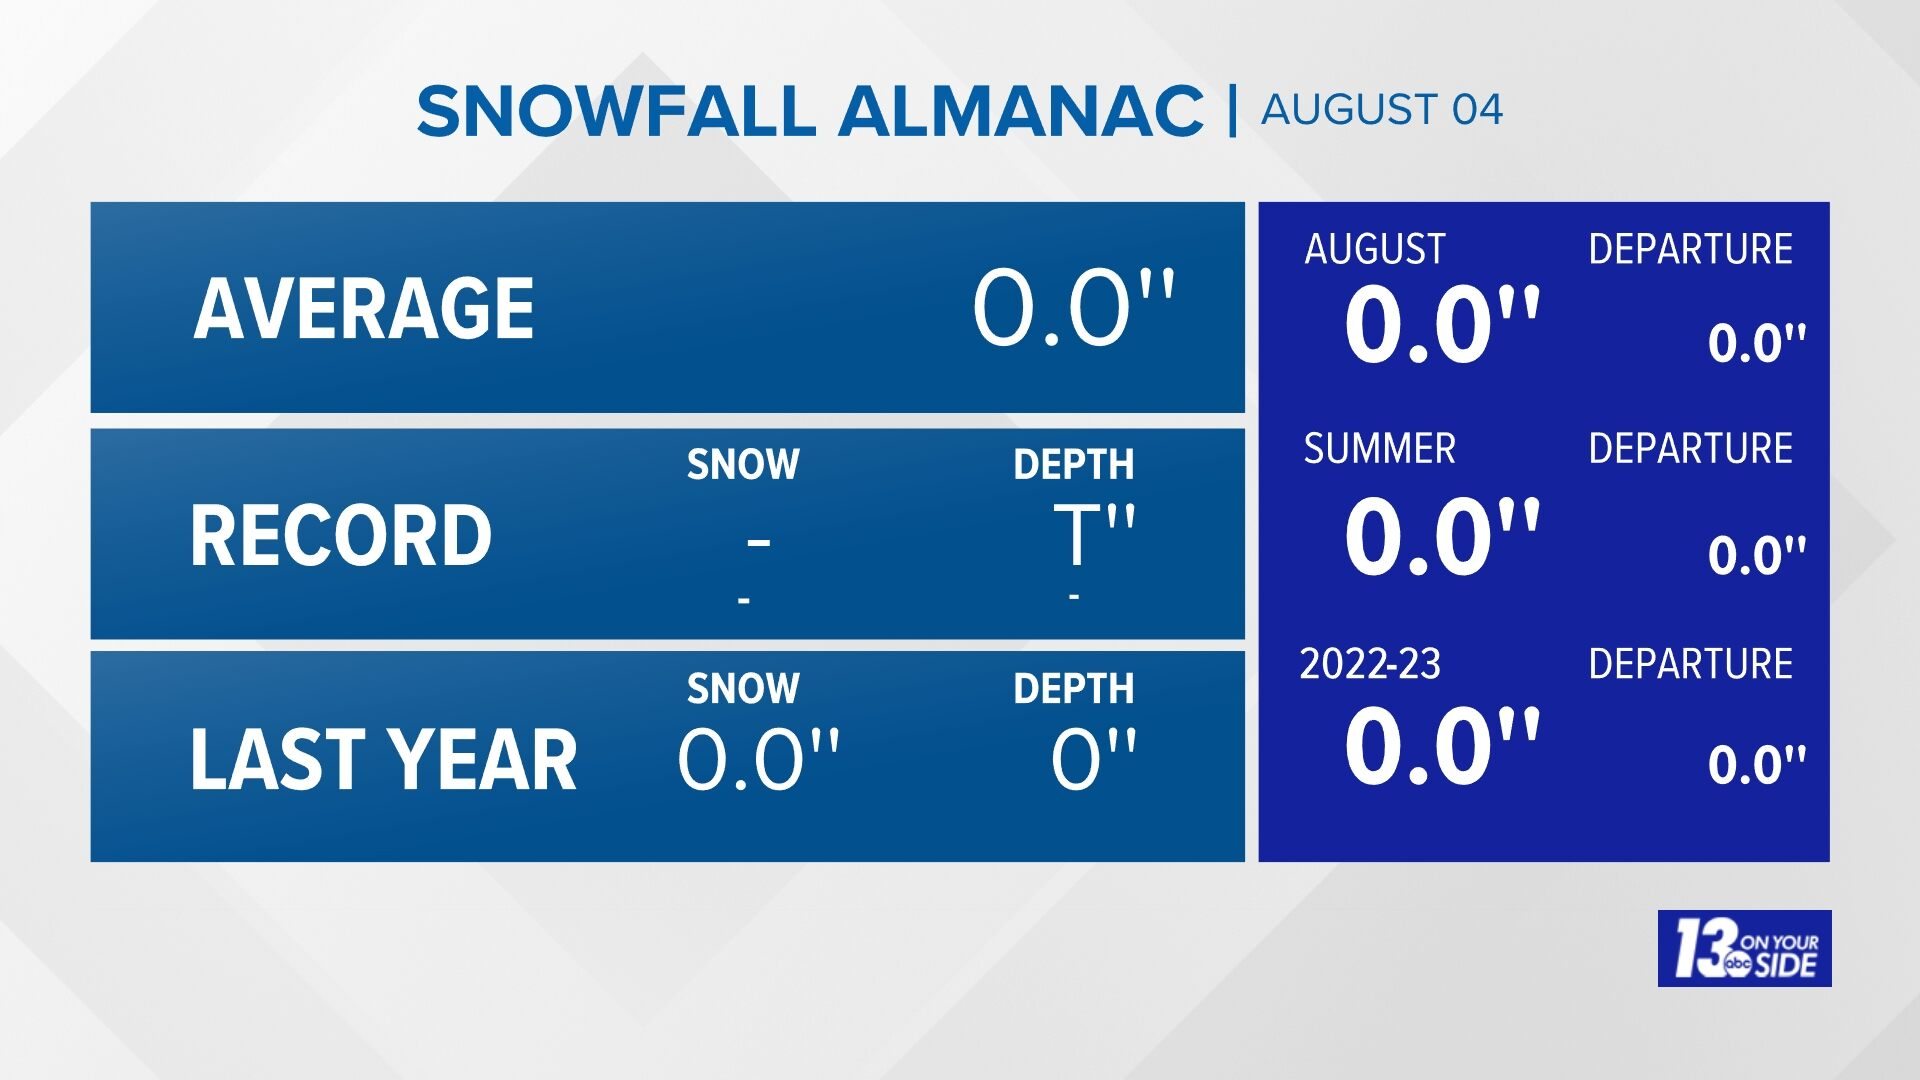 Grand Rapids Almanac Snowfall